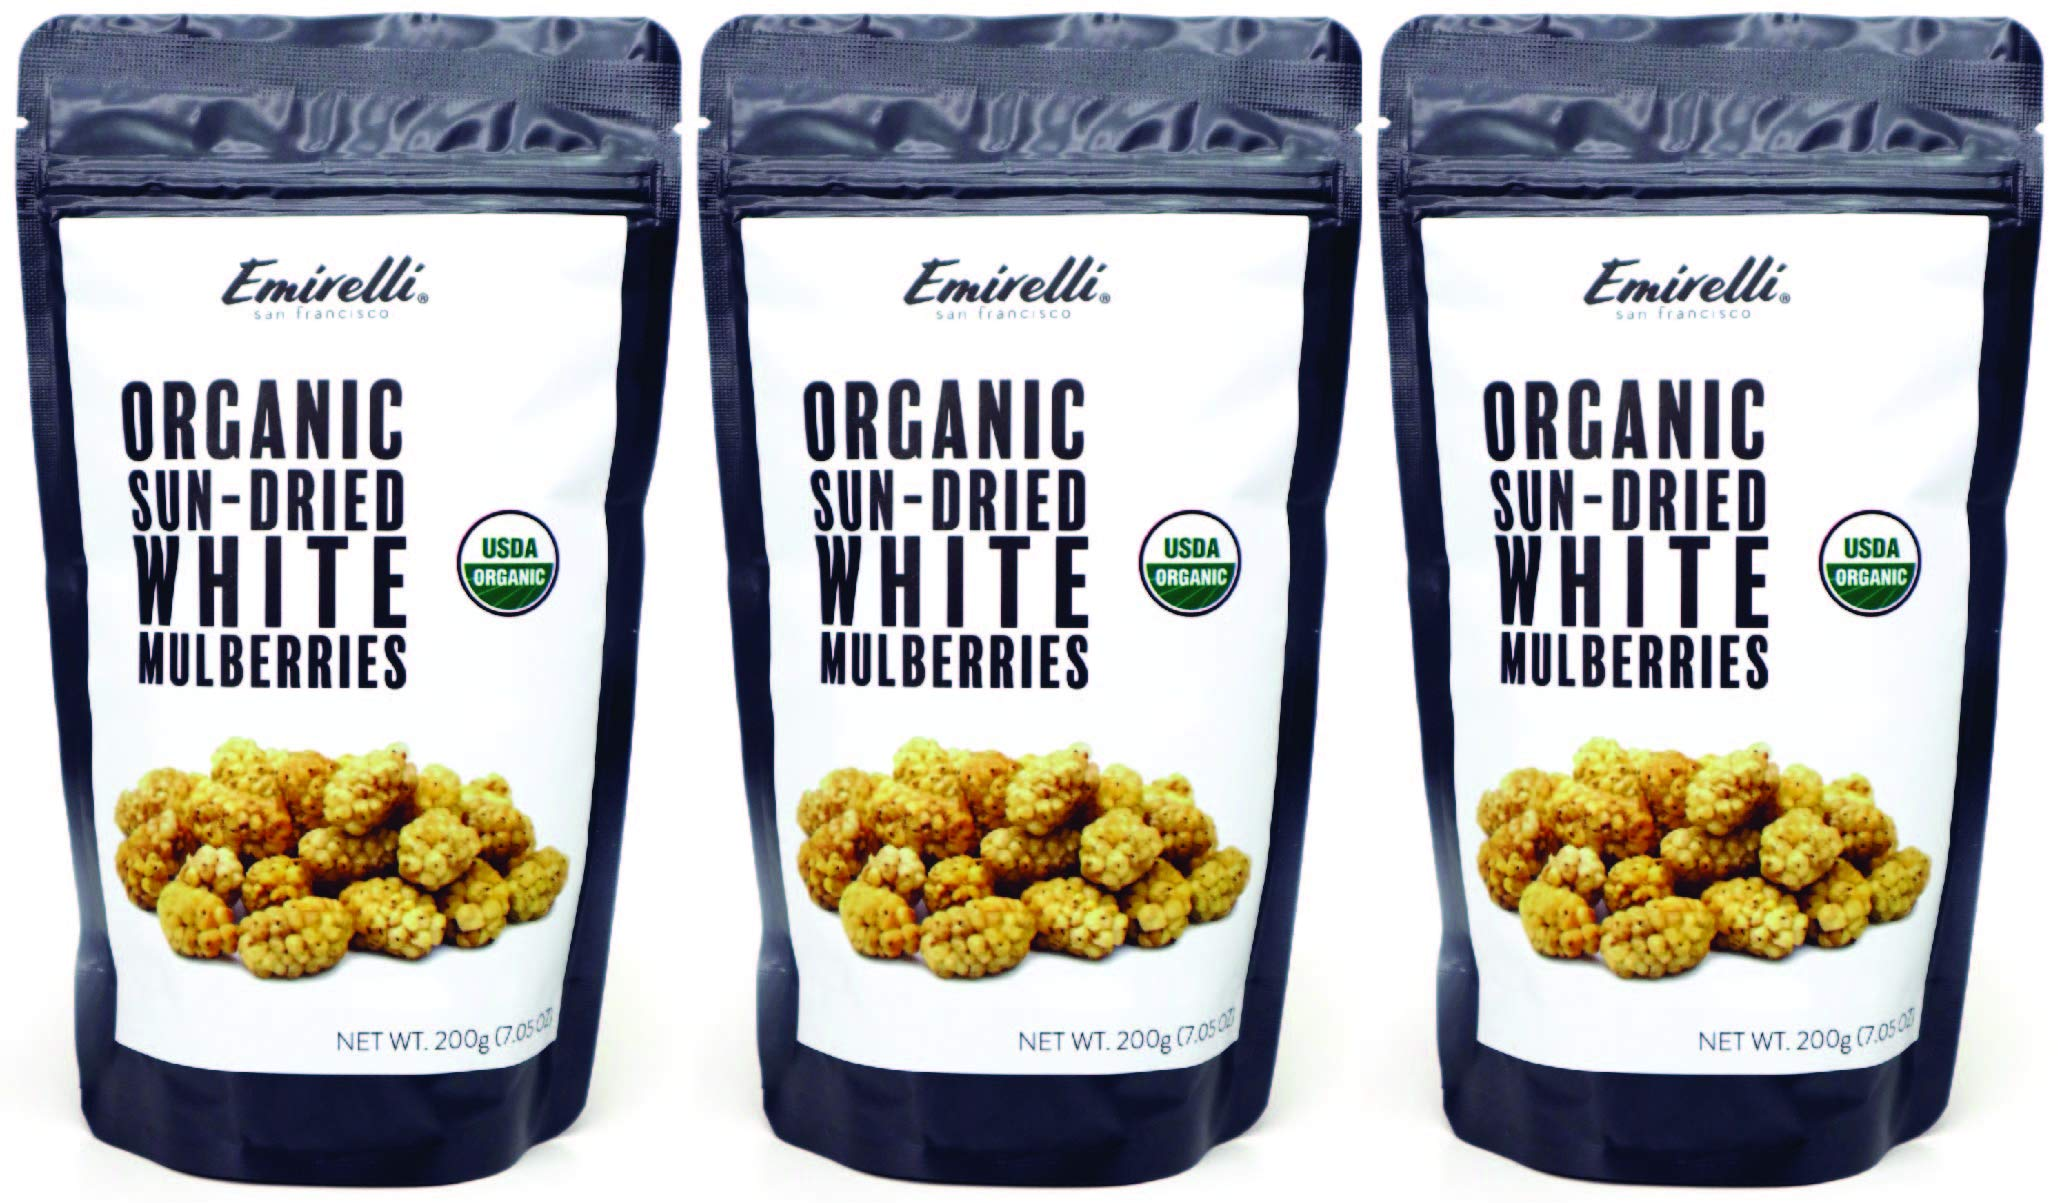 Emirelli Turkish Sun-Dried Mulberries - Delicious Gluten Free Non GMO Vegan Snacks - No Sugar Added - Sunny Fruits, Packed in Resealable Pouch, Healthy and Nutritional (Organic Mulberries, Pack of 3)